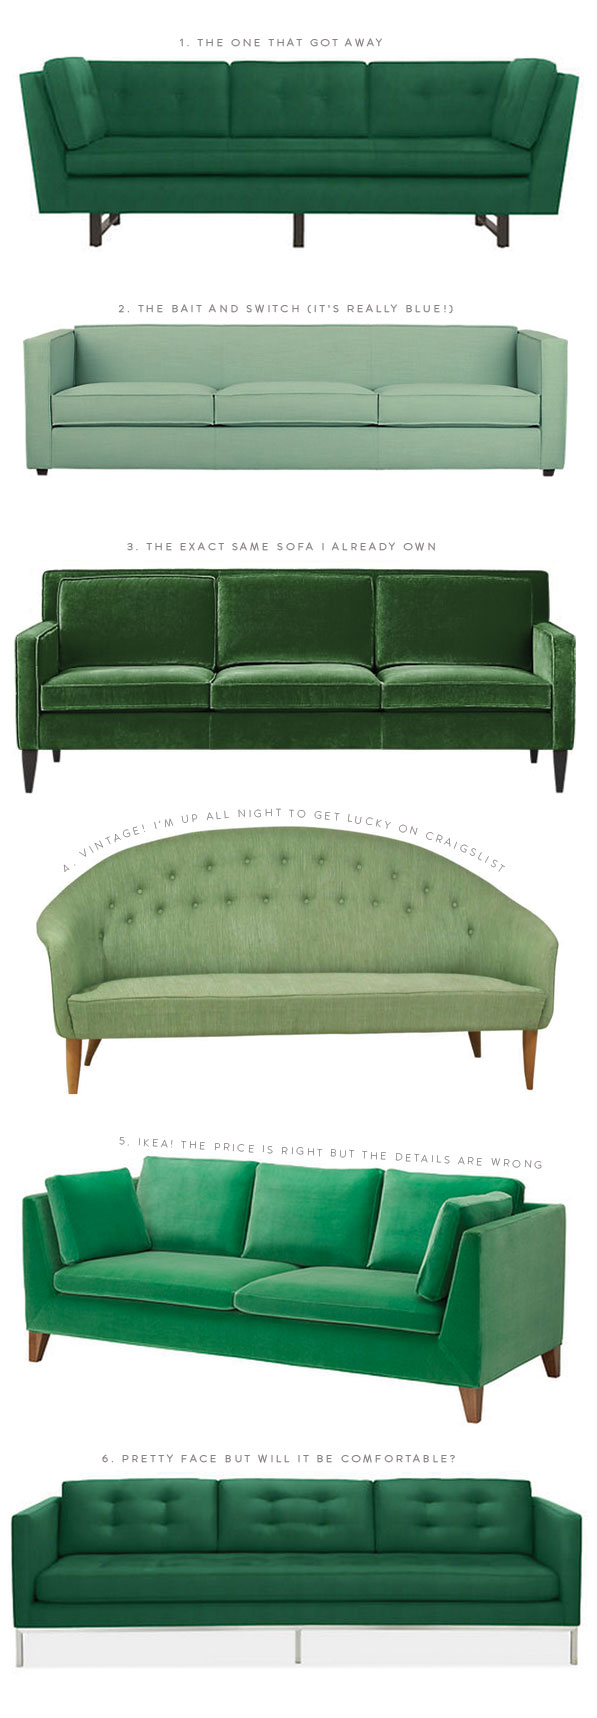 Remarkable Ikea Green Sofa Barn Sofa Bralicious Painted Fabric Chair Ideas Braliciousco